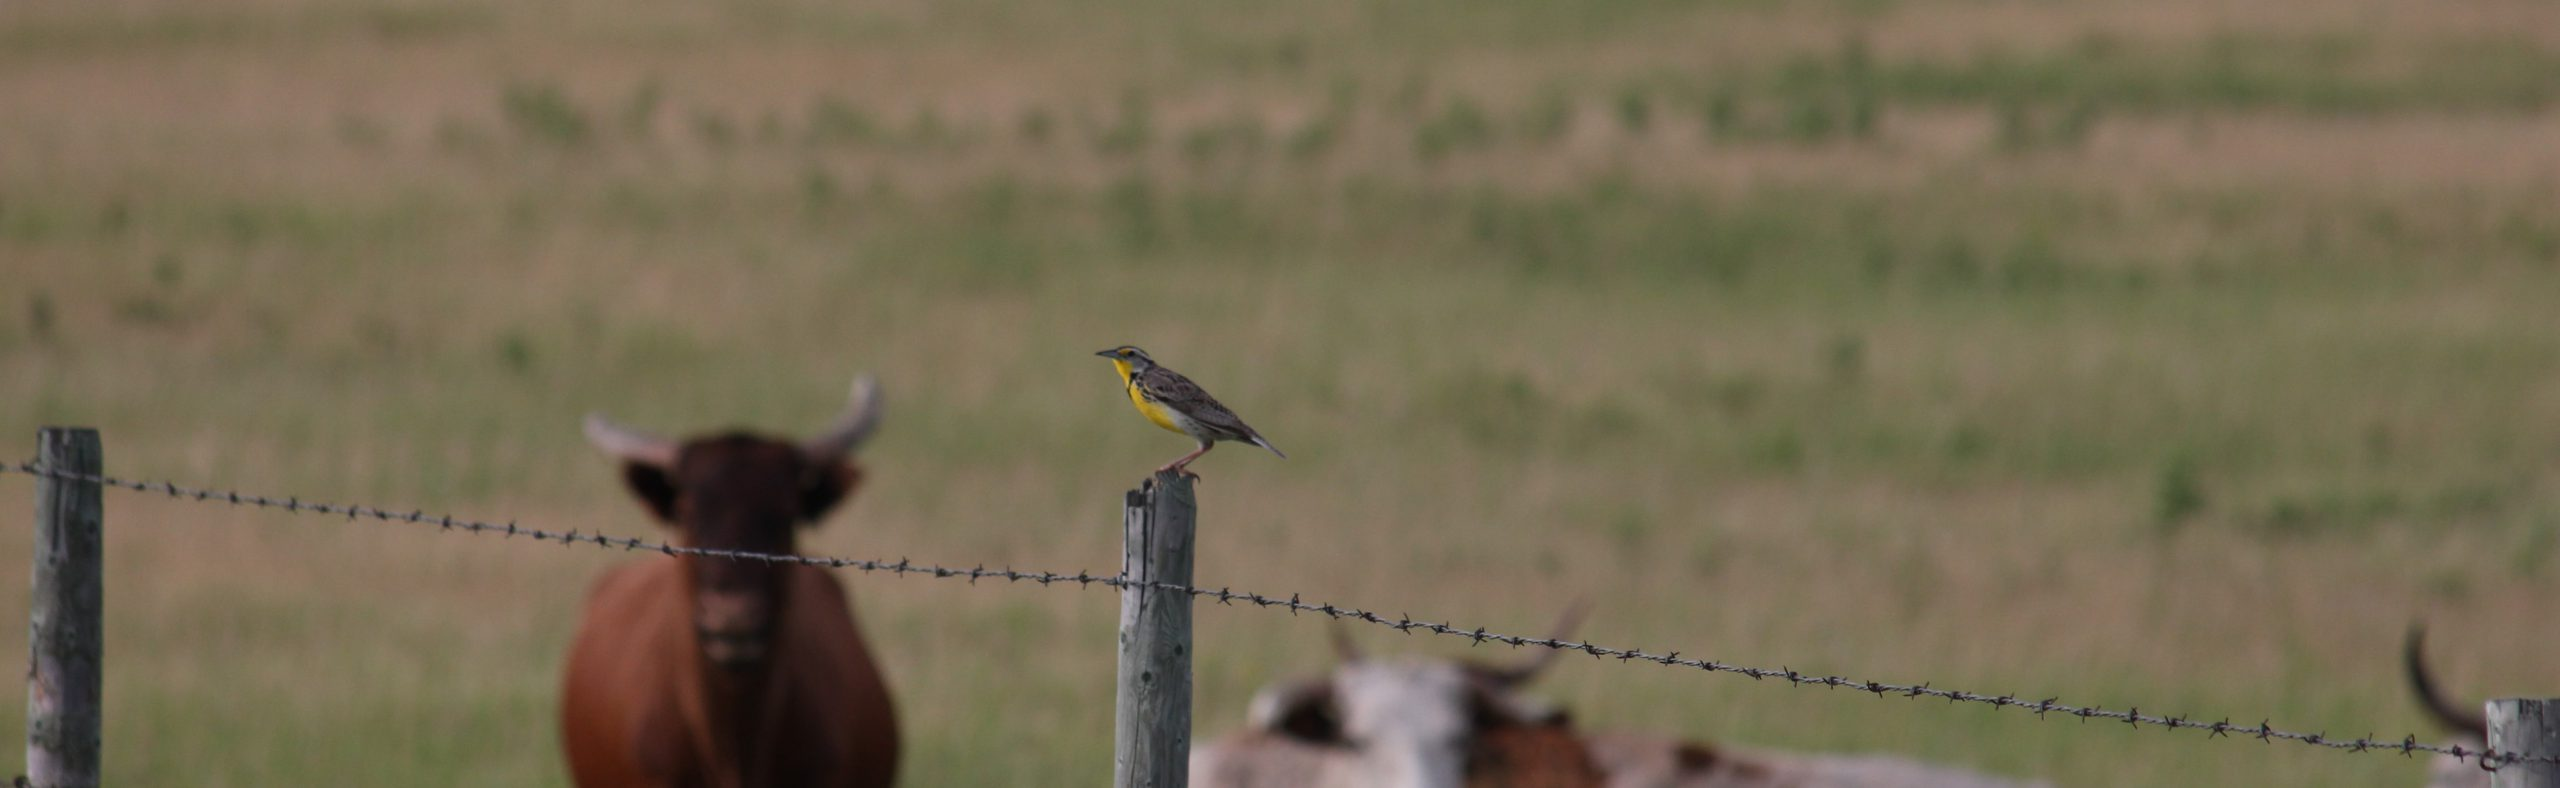 Read about Bird's Canada's new Grasslands Incentives Guide and how it will help birds.